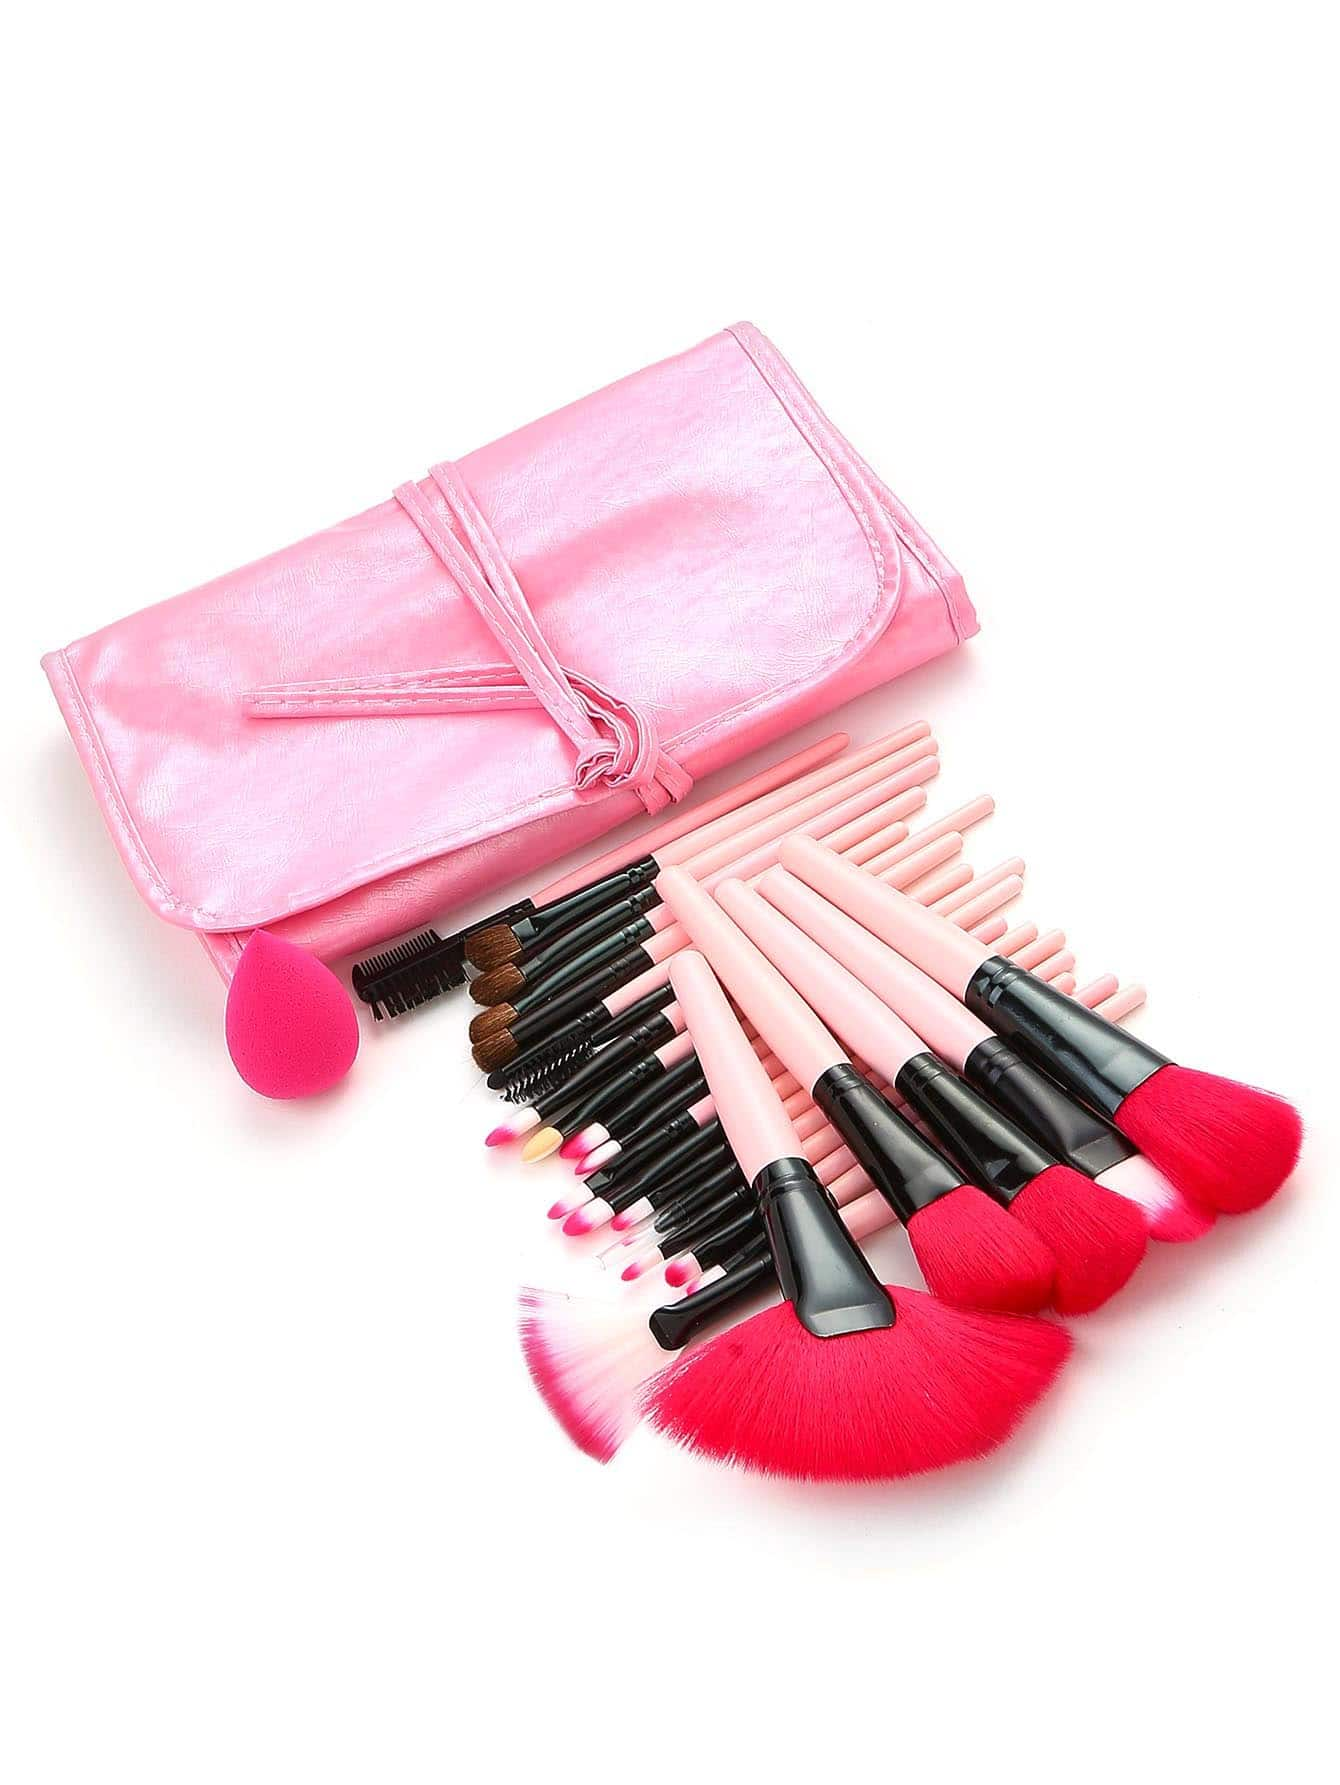 Professional Makeup Brush 24pcs With PU Bag sinle 24pcs set professional makeup brush foundation eye shadows lipsticks powder make up brushes tools w bag pincel maquiagem